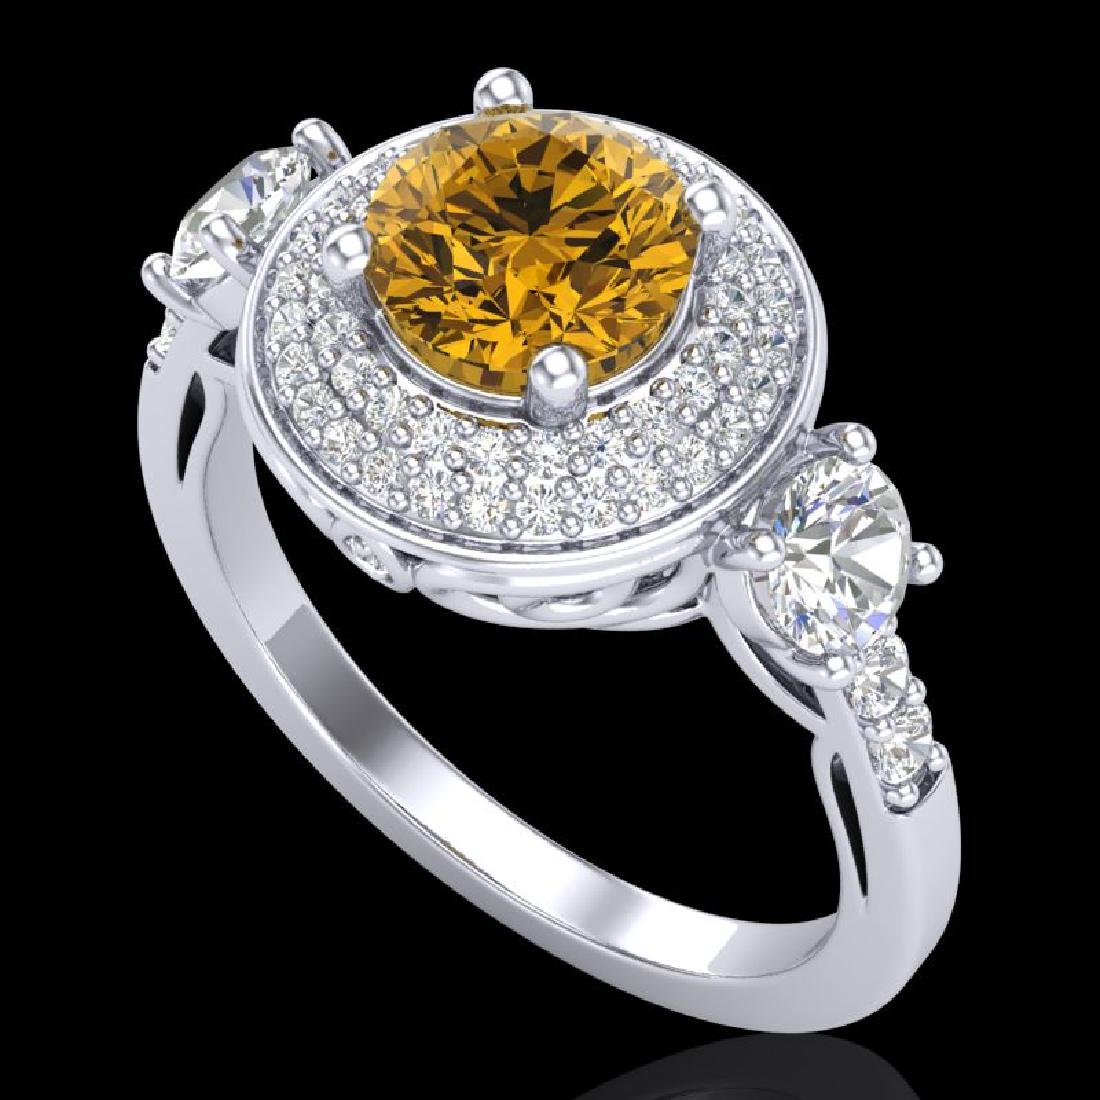 2.05 CTW Intense Fancy Yellow Diamond Art Deco 3 Stone